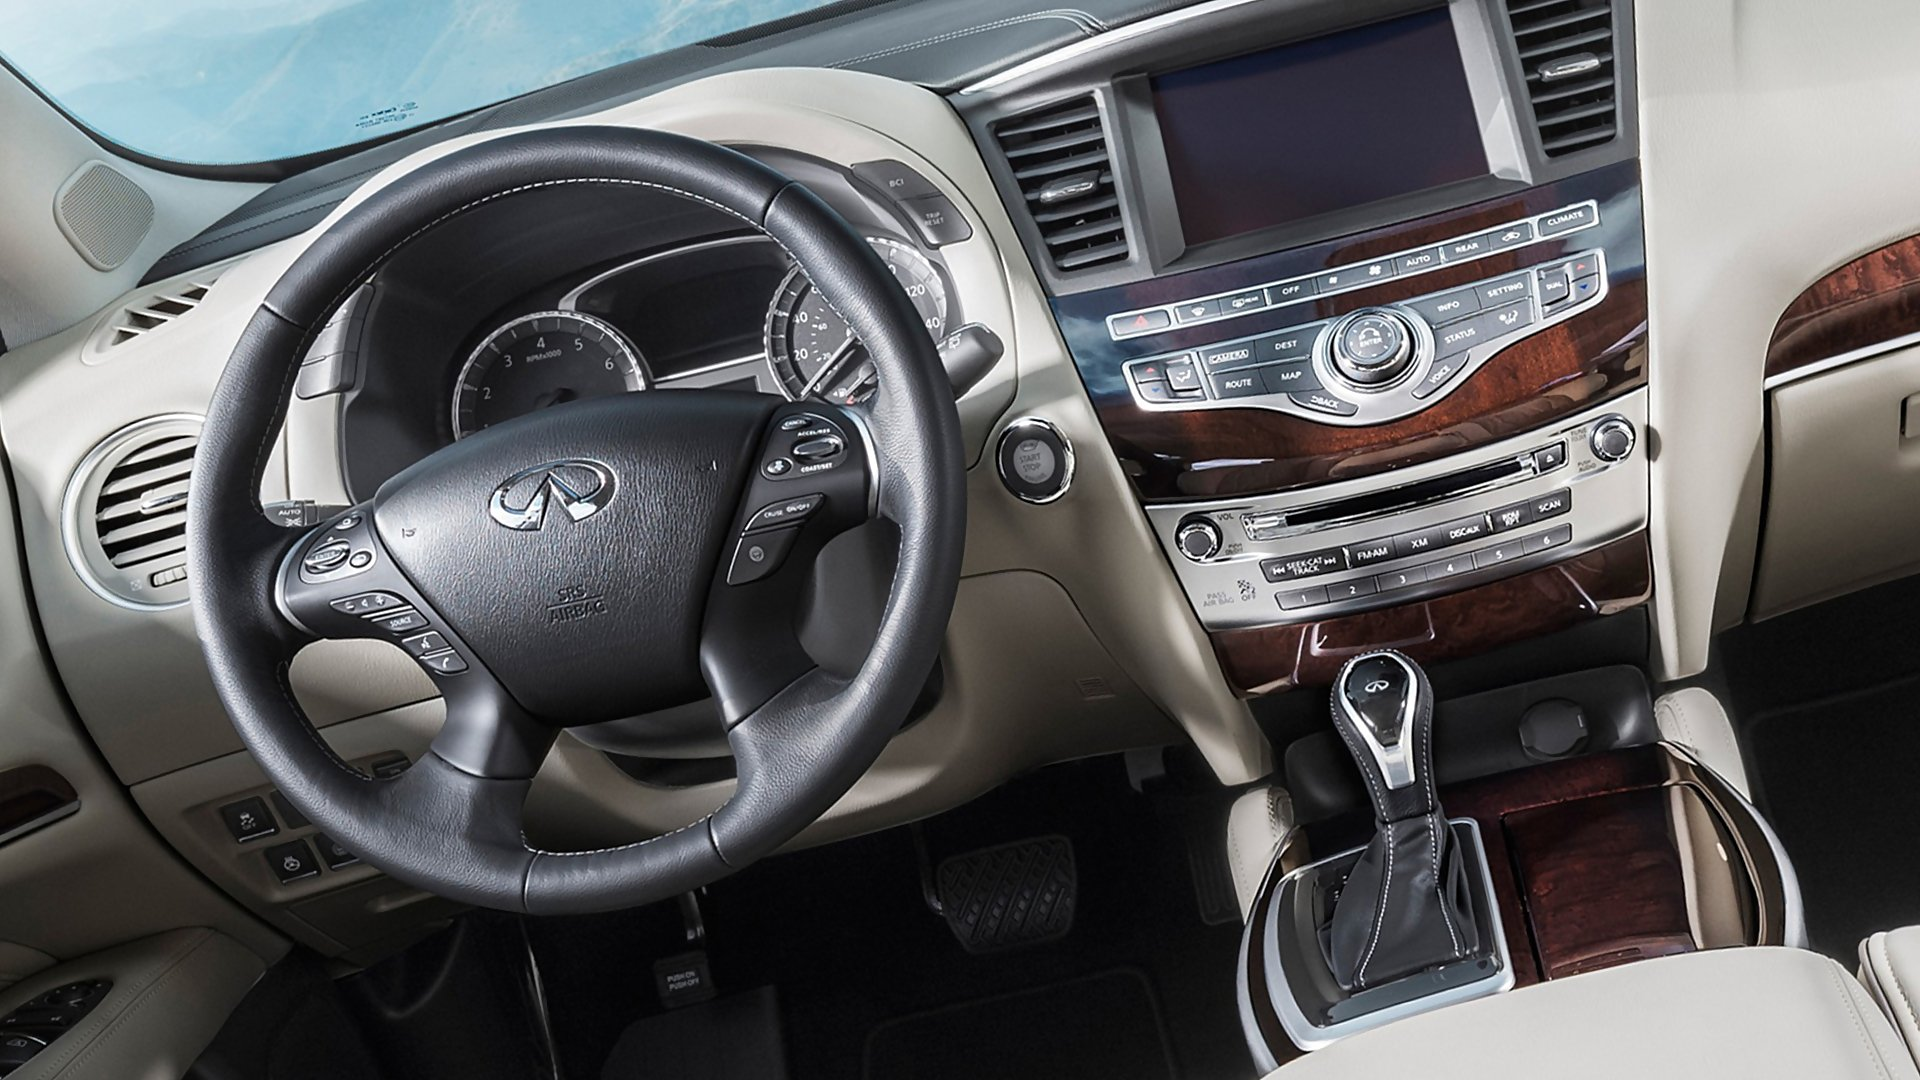 New 2019 Infiniti QX60 Interior Design